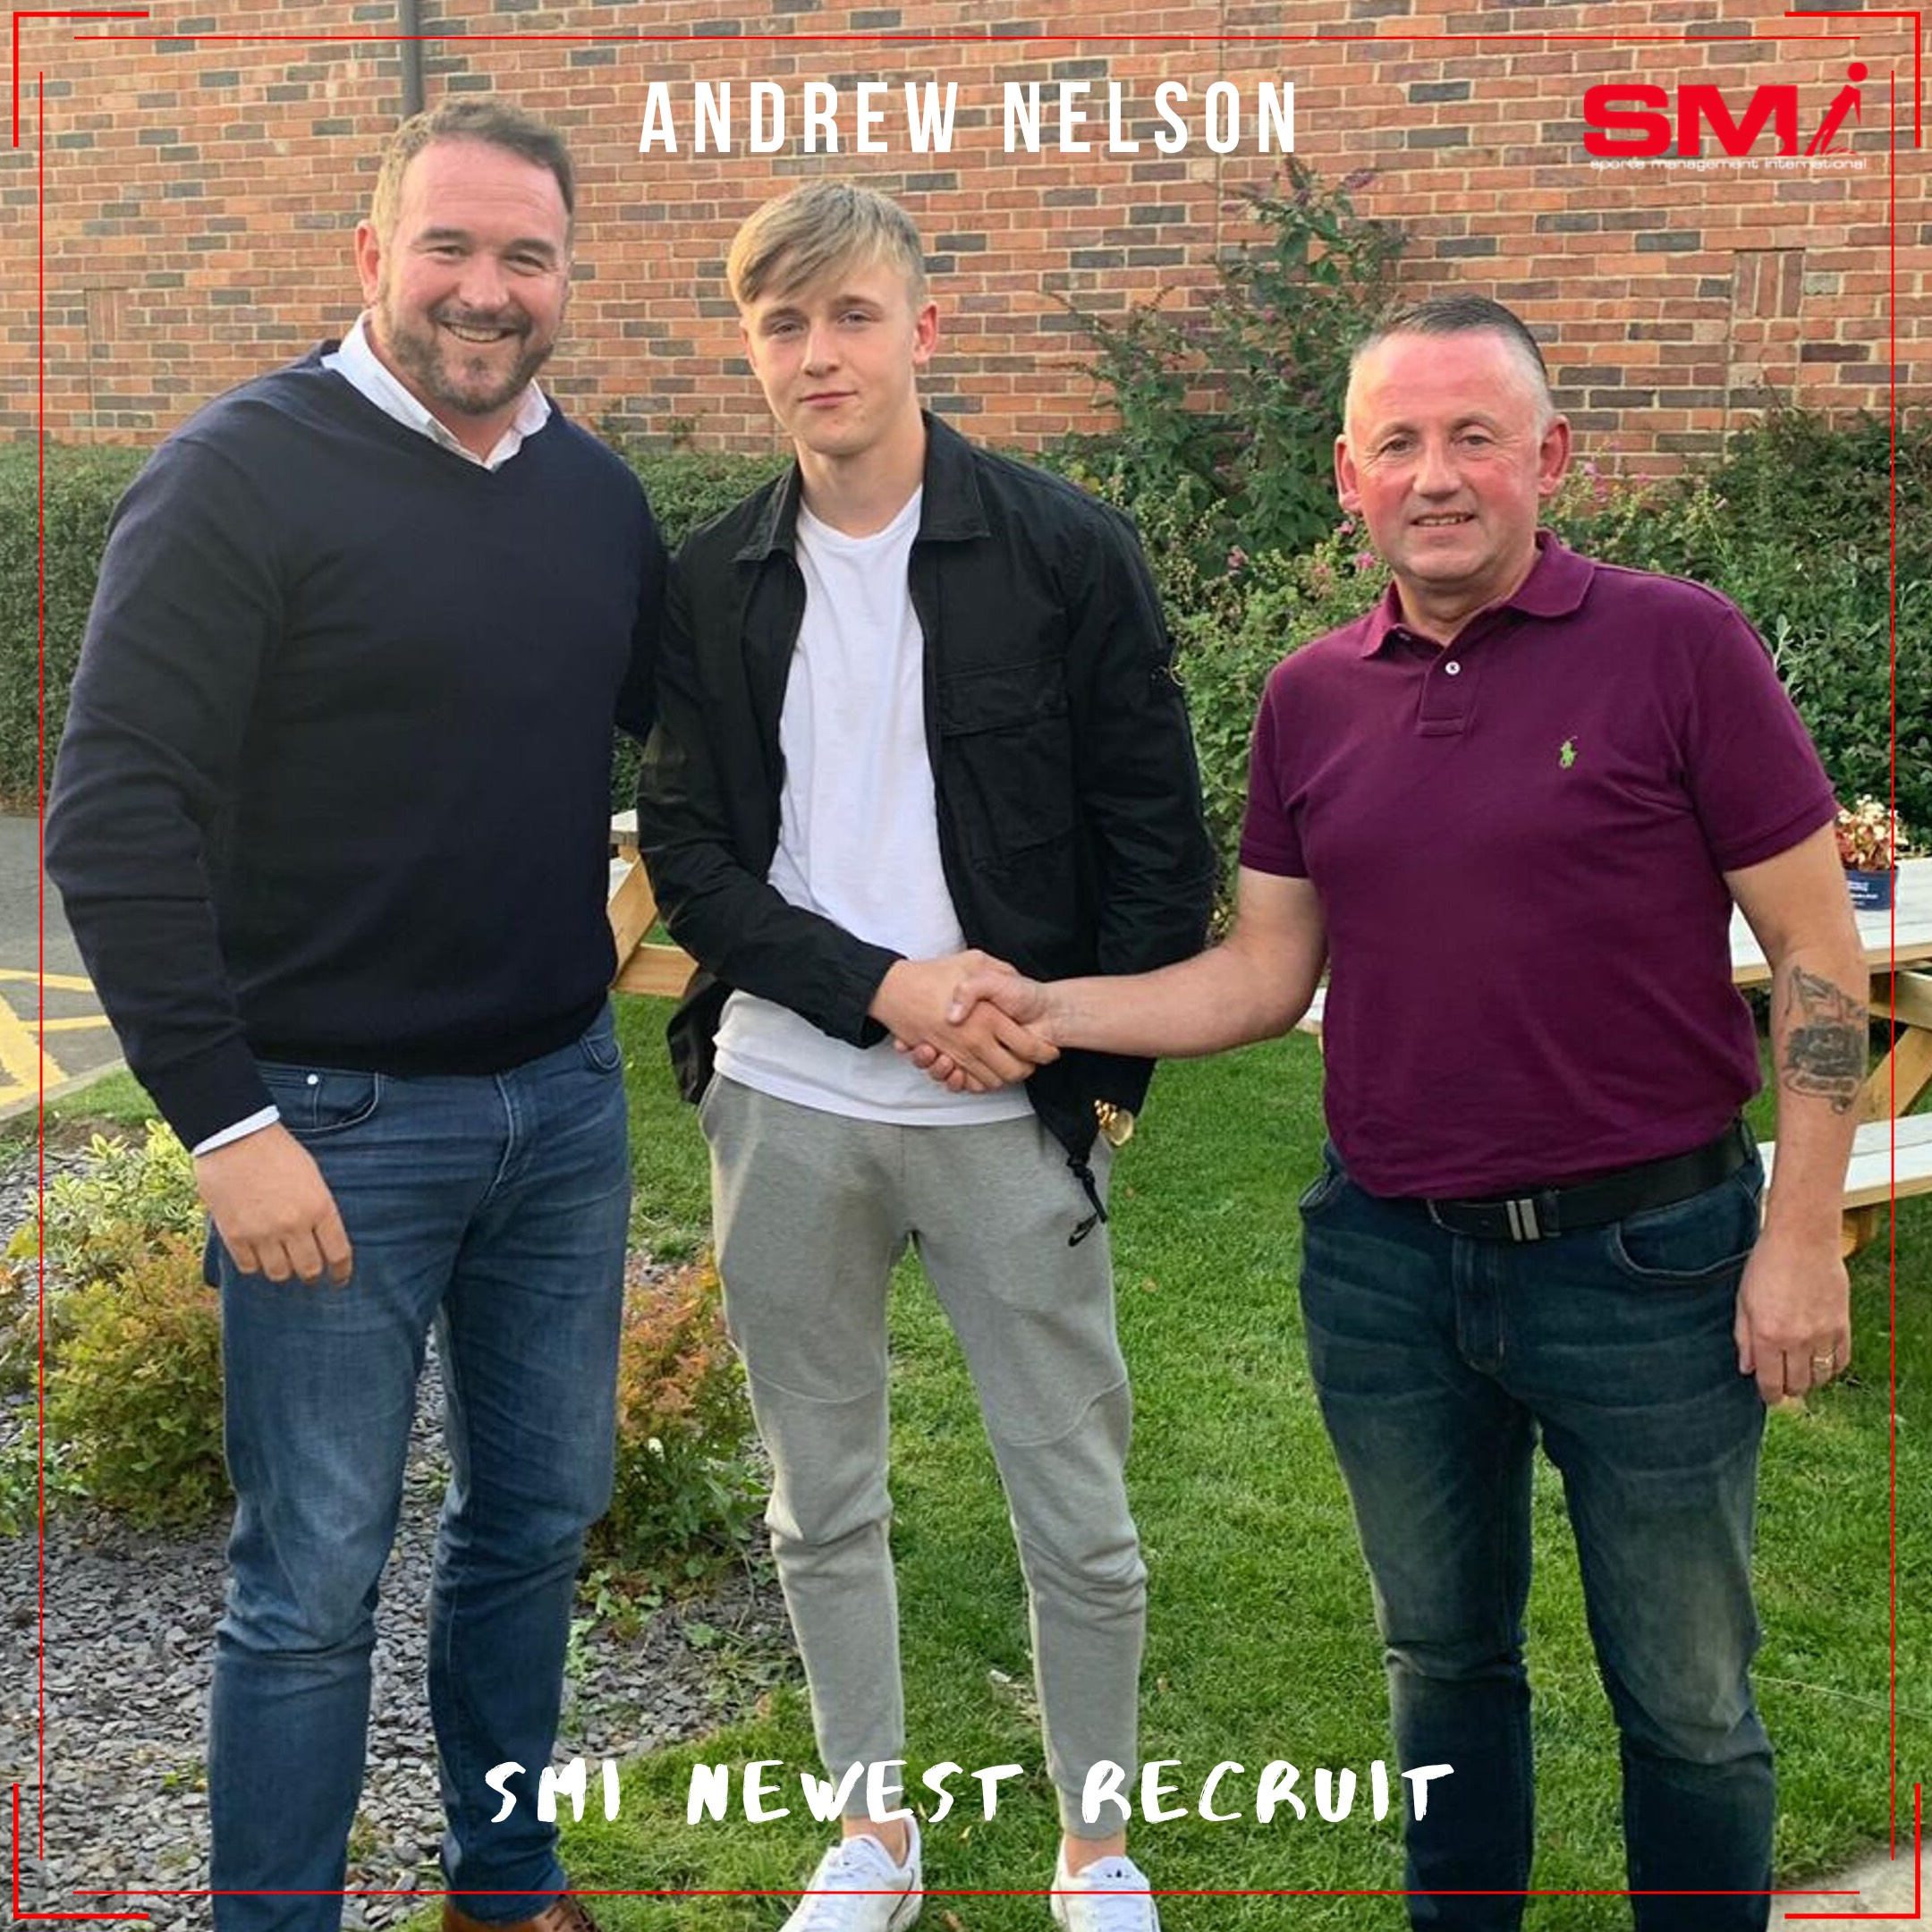 SMI New recruit Andrew Nelson